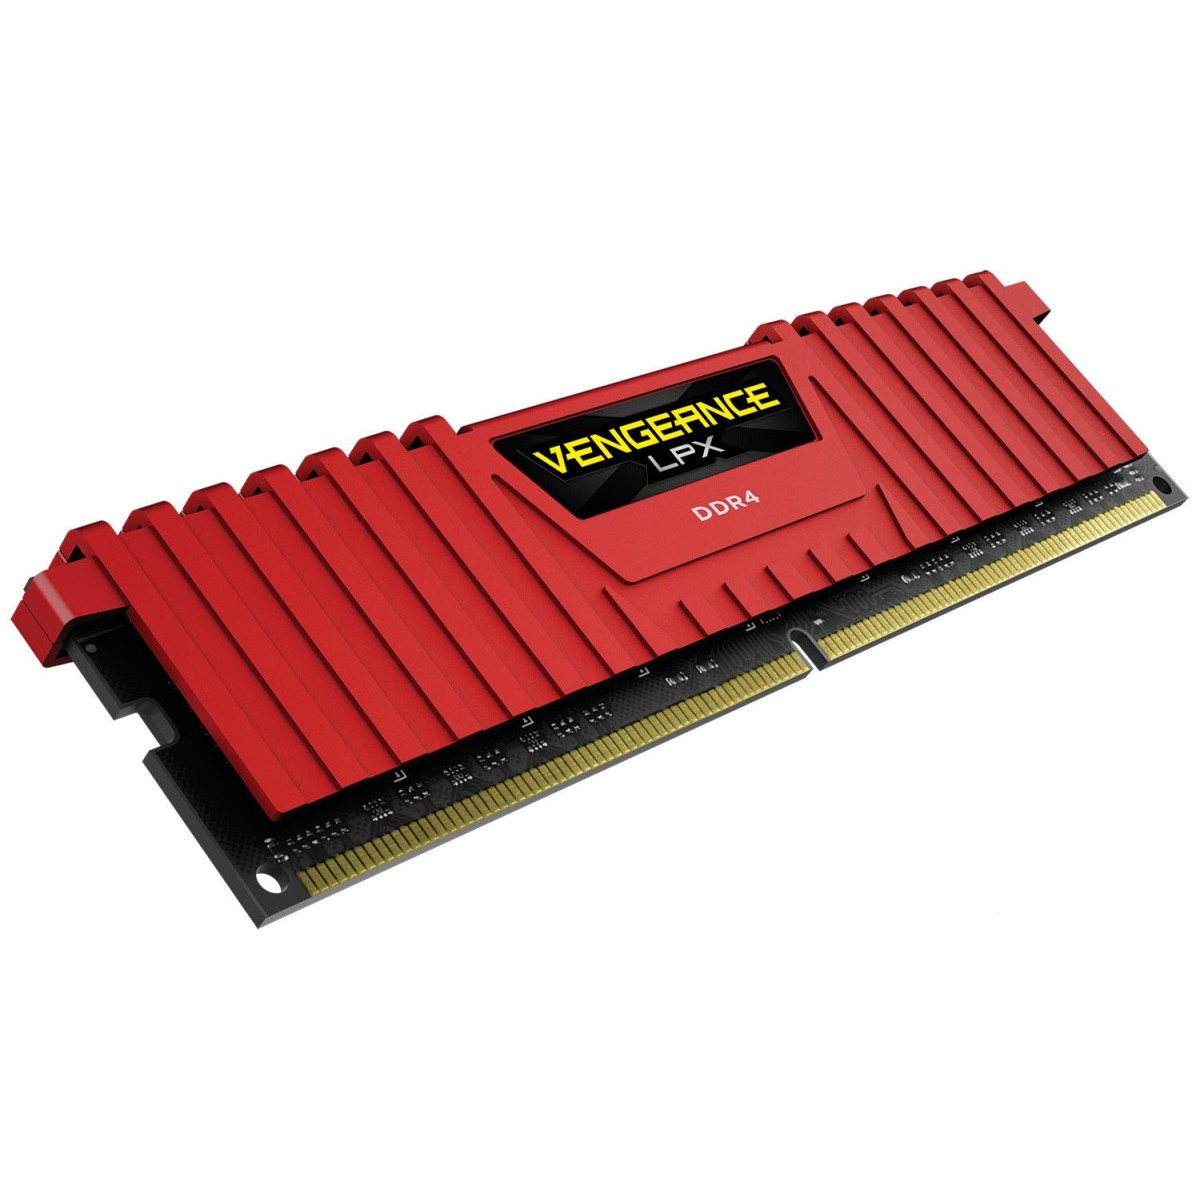 CORSAIR Vengeance LPX 8GB DDR-4 2666MHz Memory-RED